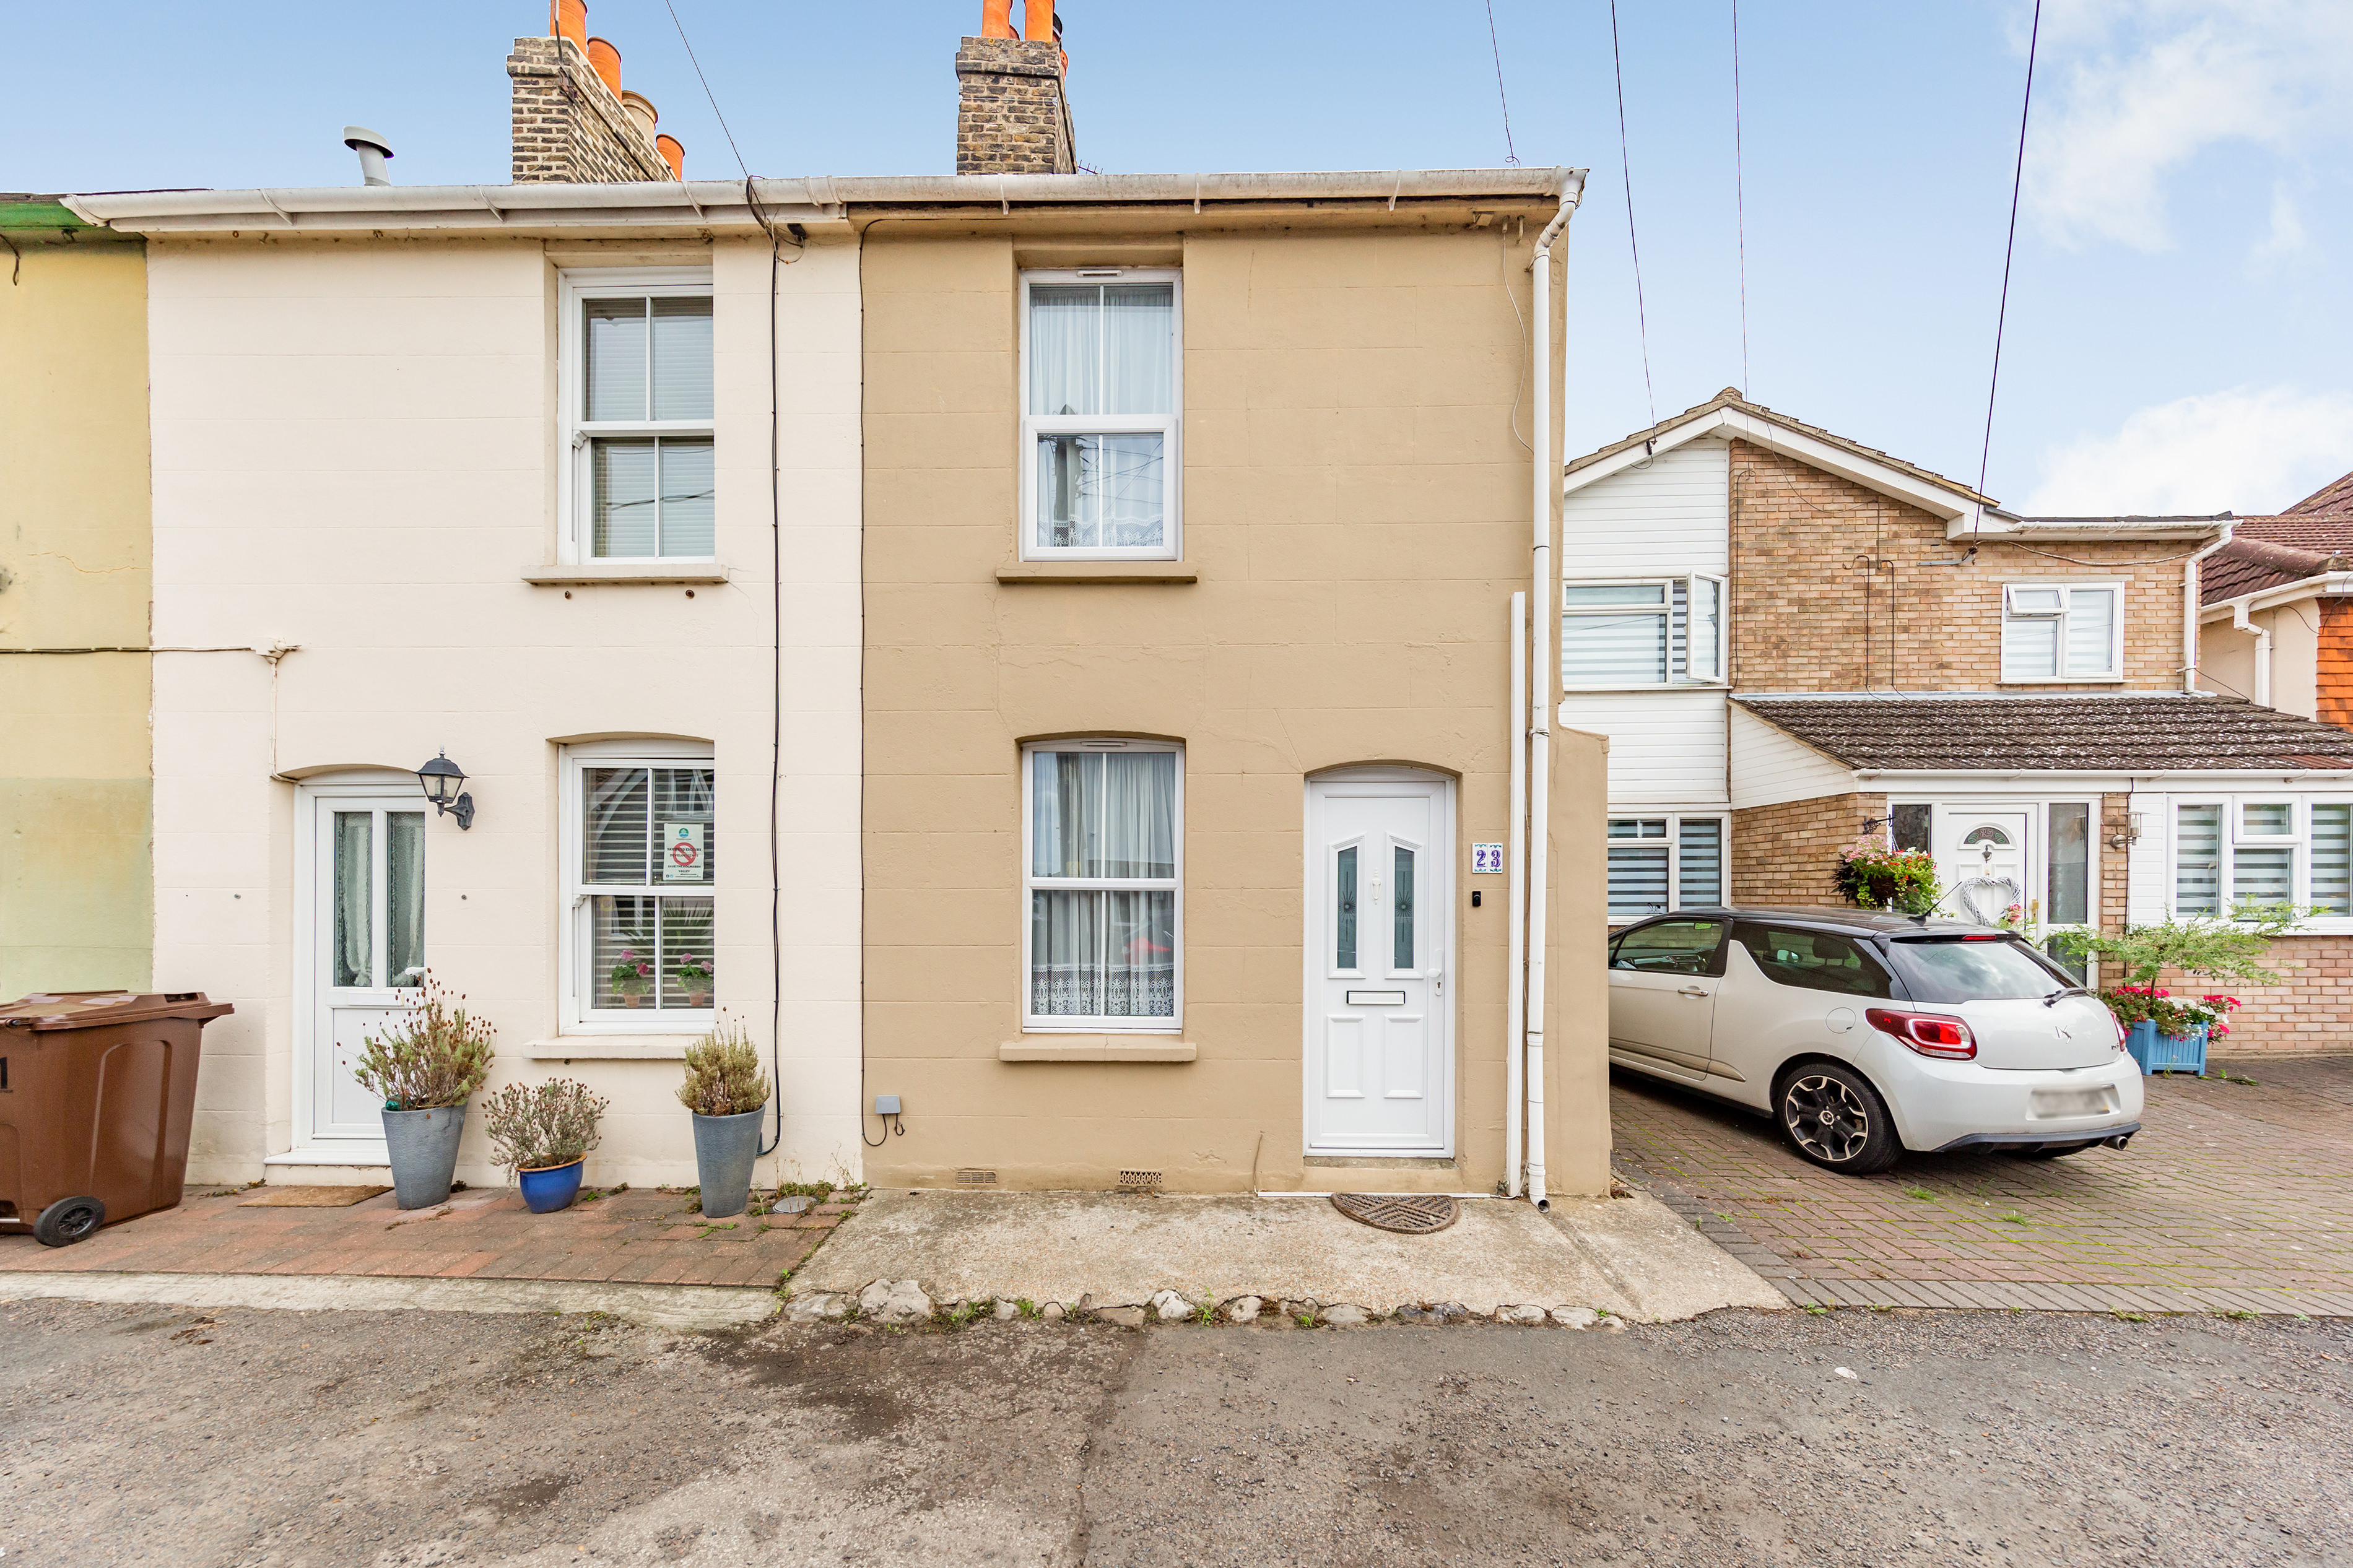 UPNOR - Guide Price £225,000-£230,000